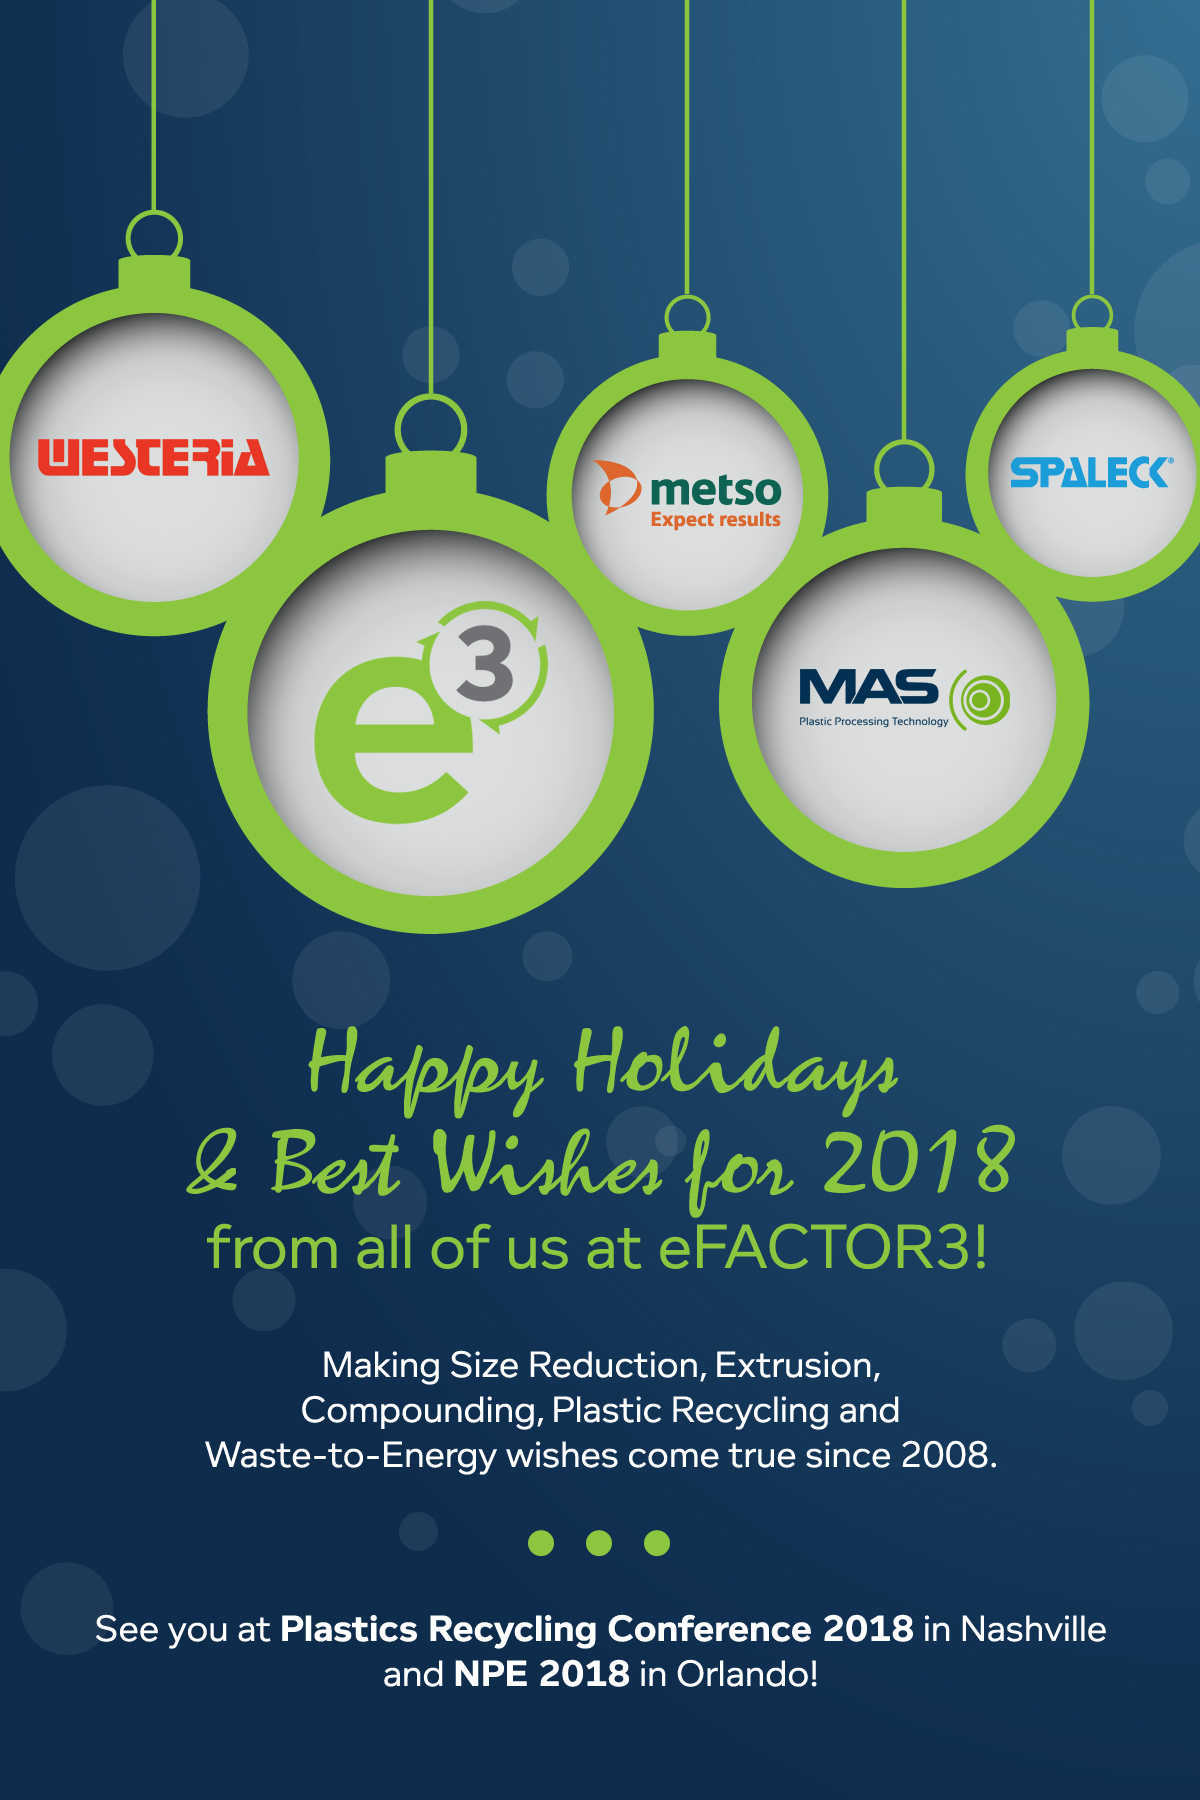 Happy Holidays & Best Wishes for 2018 from all of us at eFACTOR!